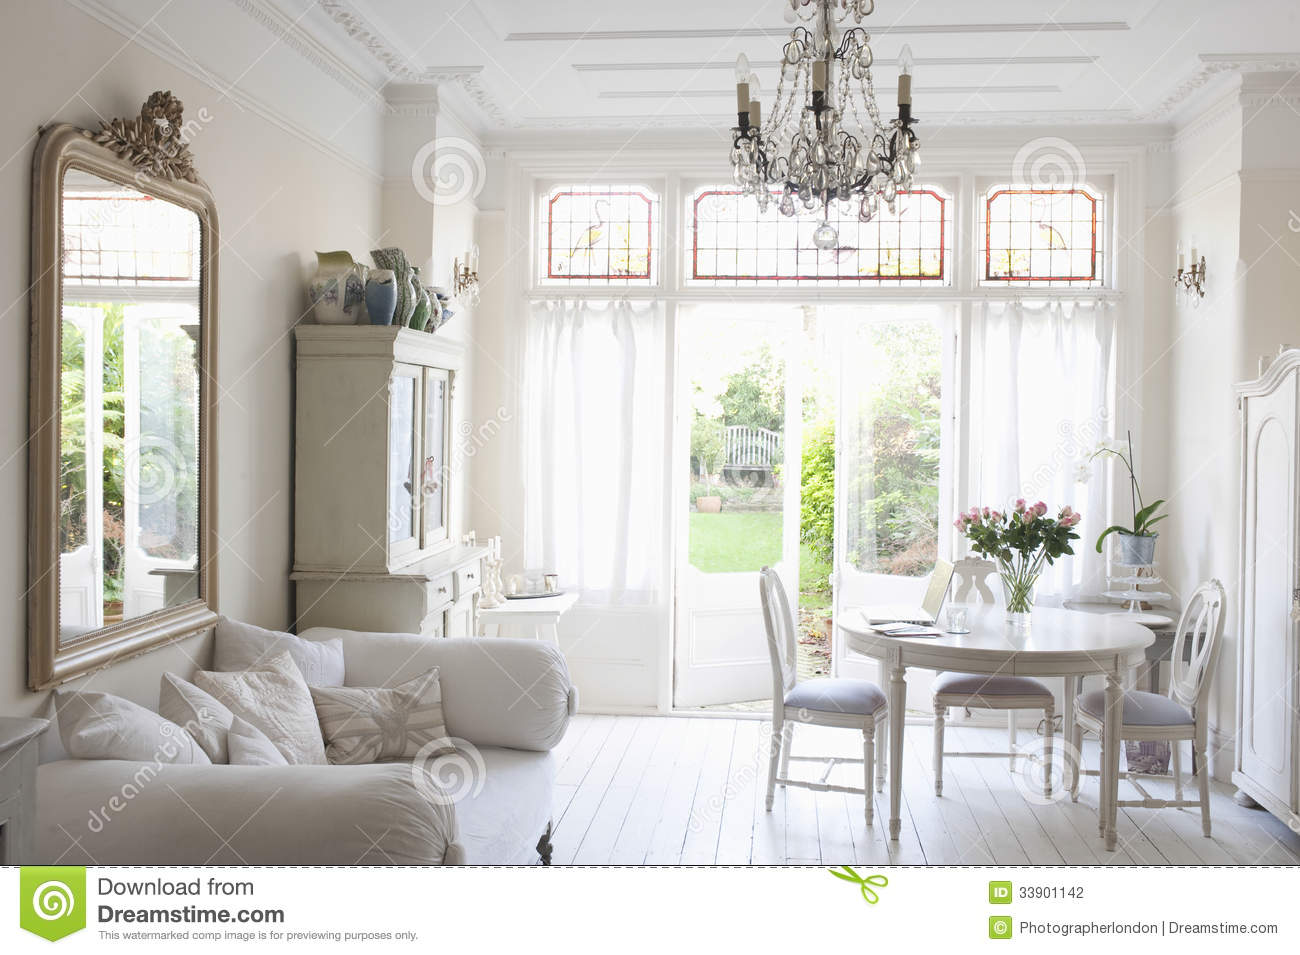 Rustic Home stock photo. Image of comfort, house, reflecting - 33901142